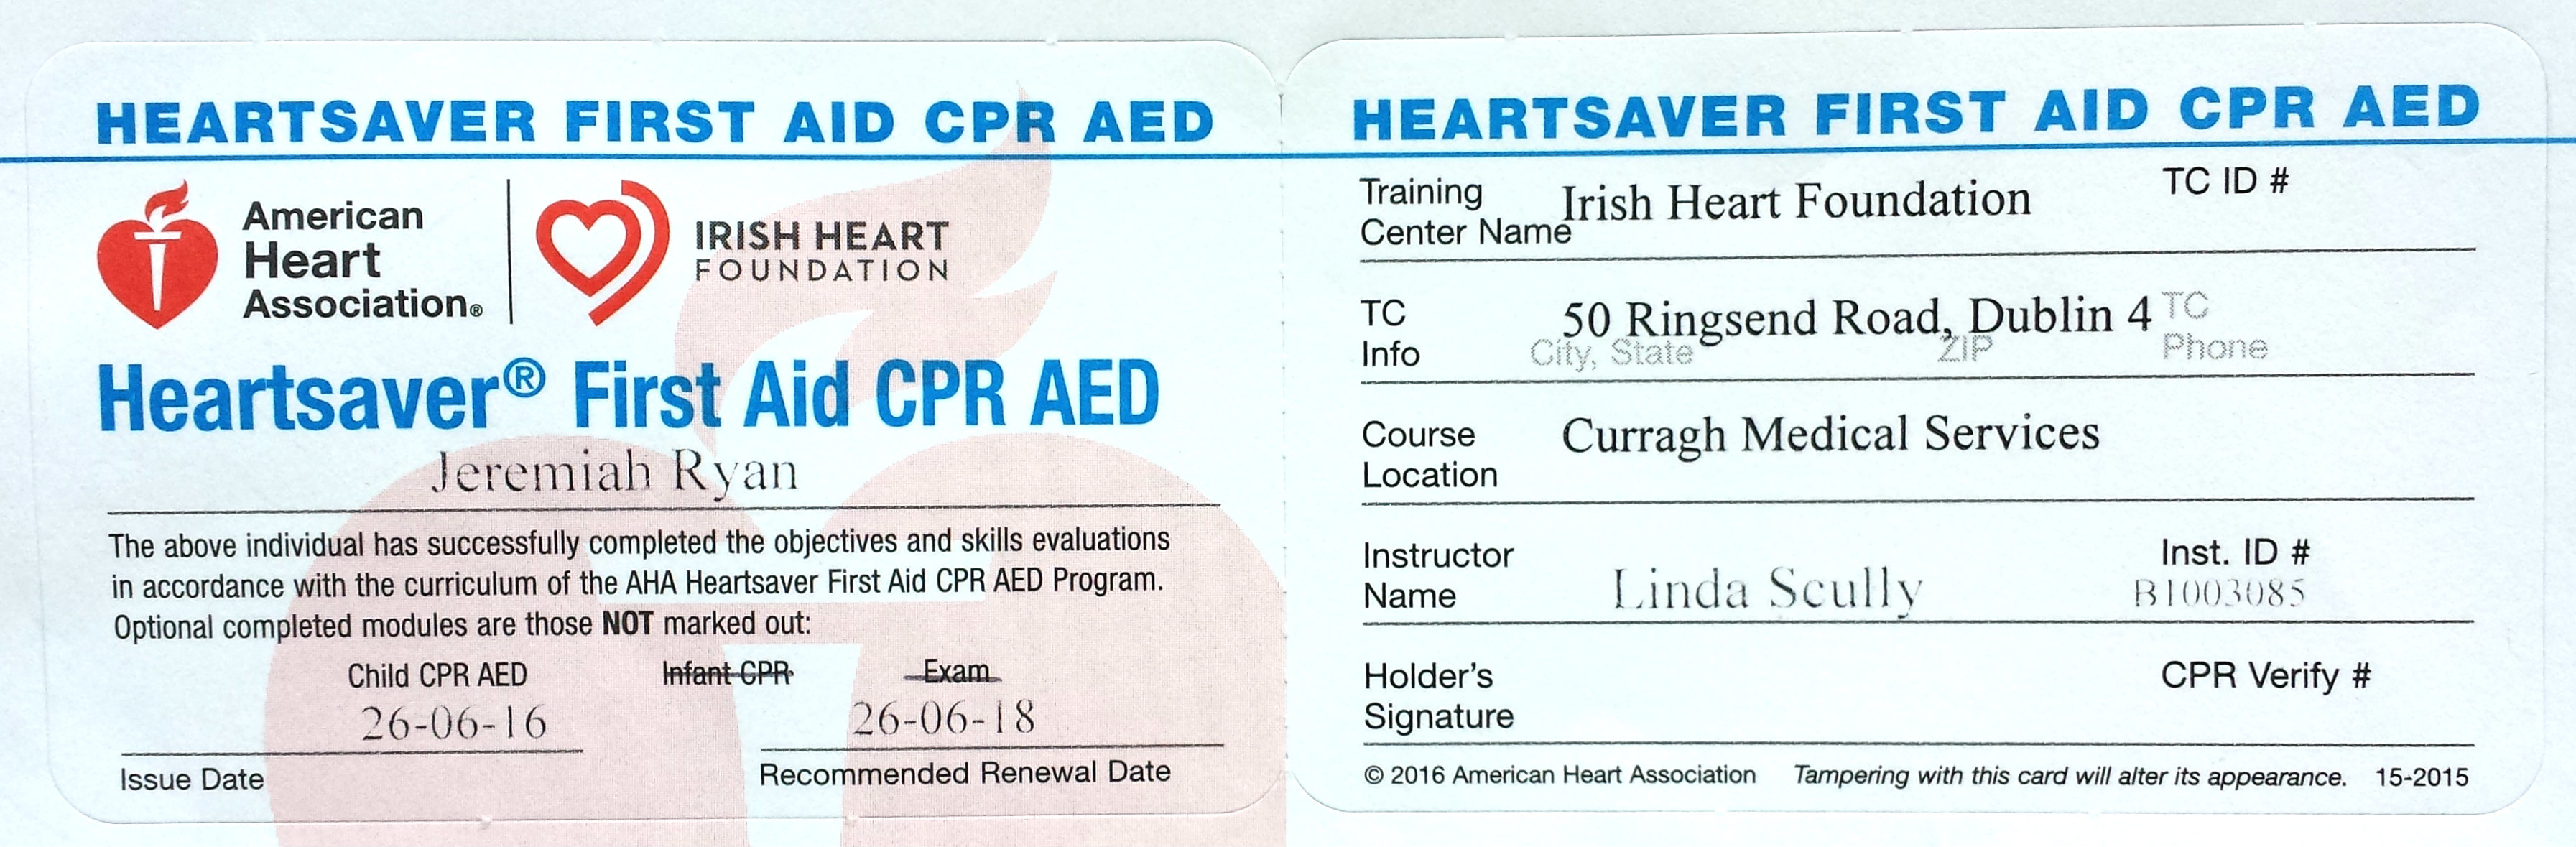 dublin aikido First Aid CPR AED Certificate